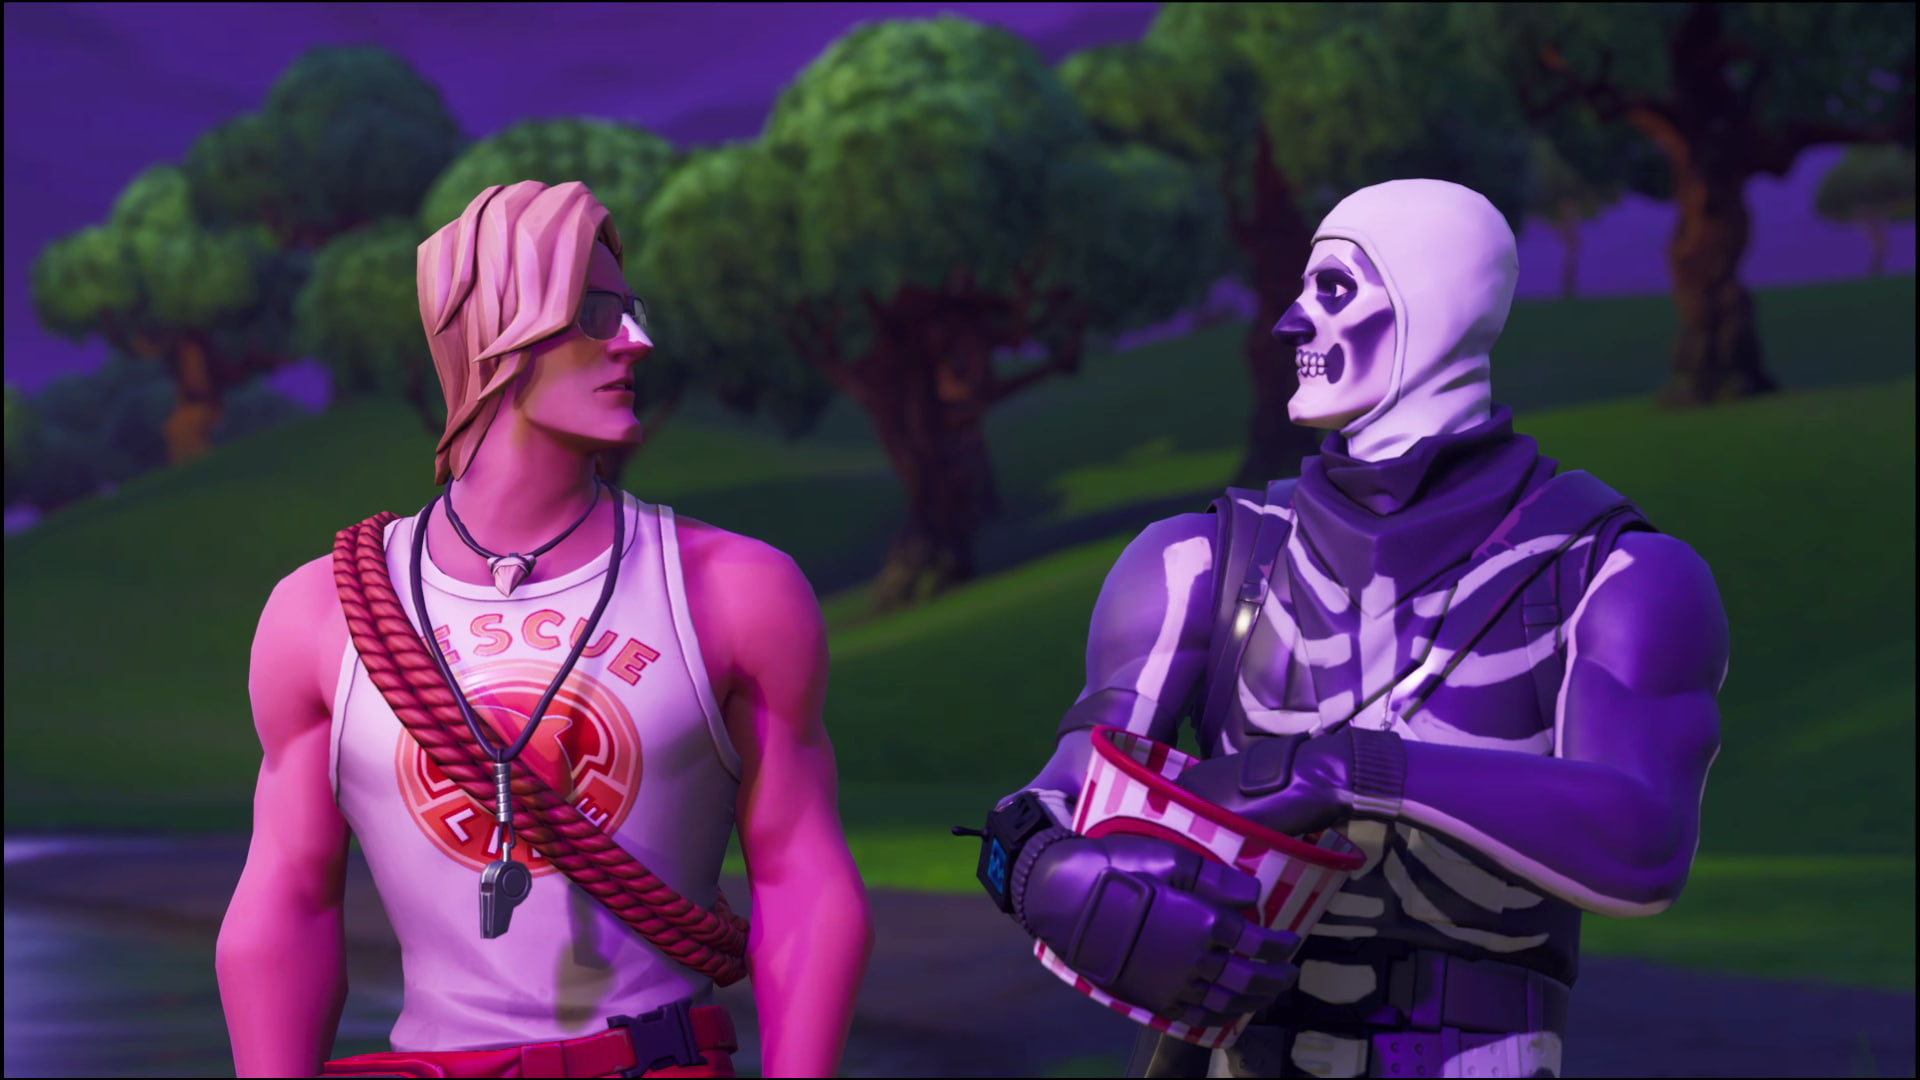 Everything You Need To Know About Friday Fortnite On June 28